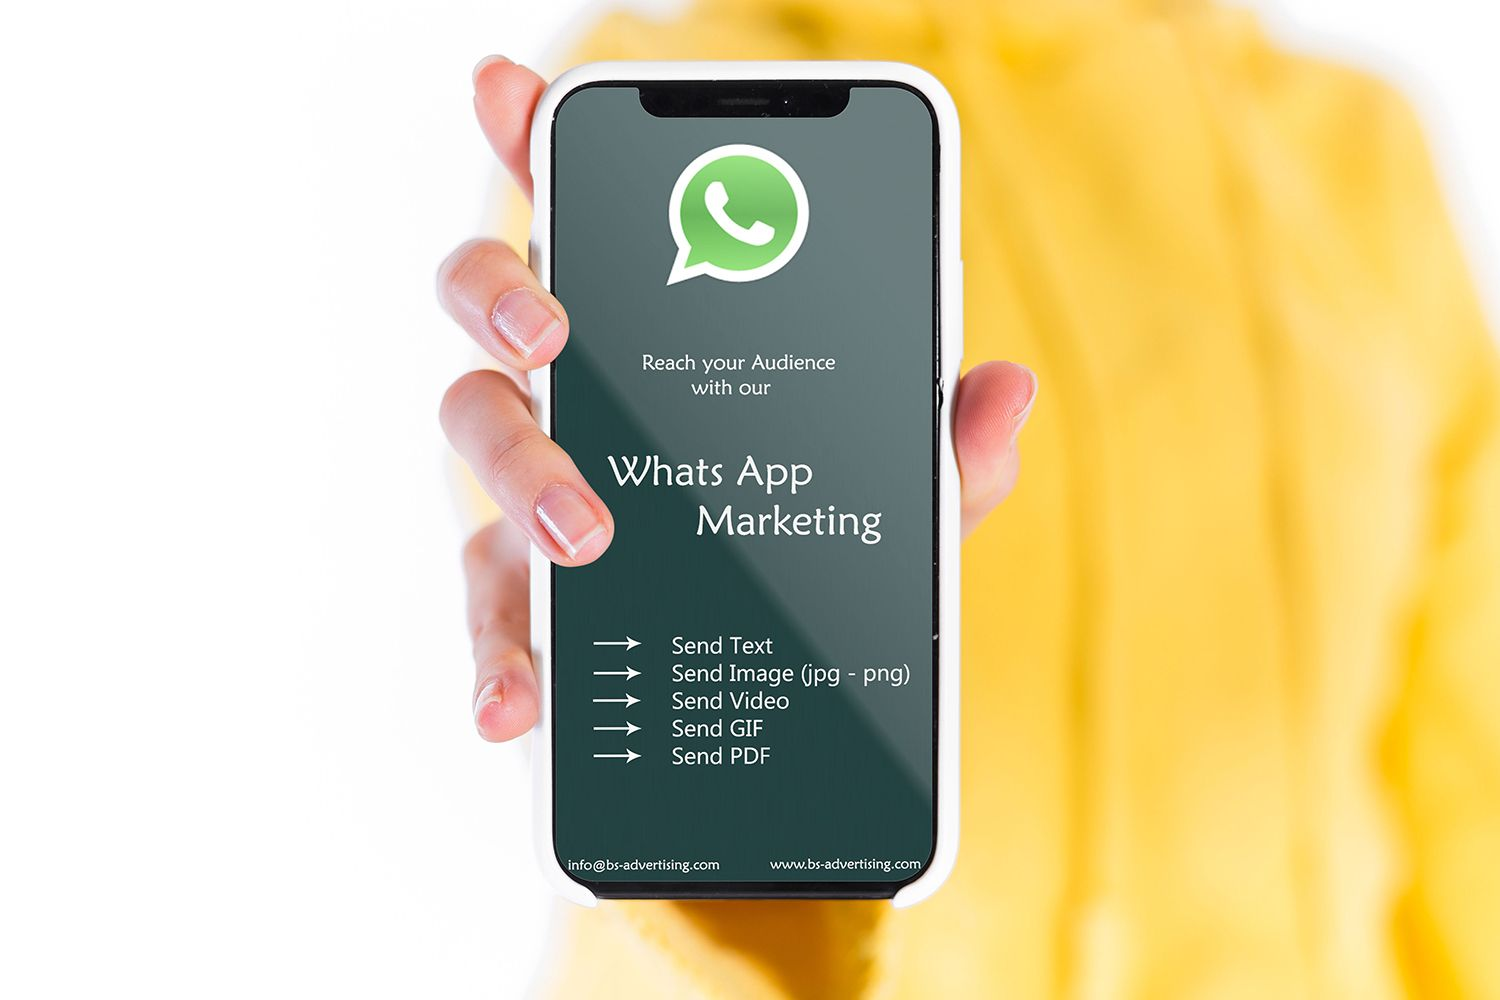 Whats App Marketing Services In Jeddah Whats App Marketing